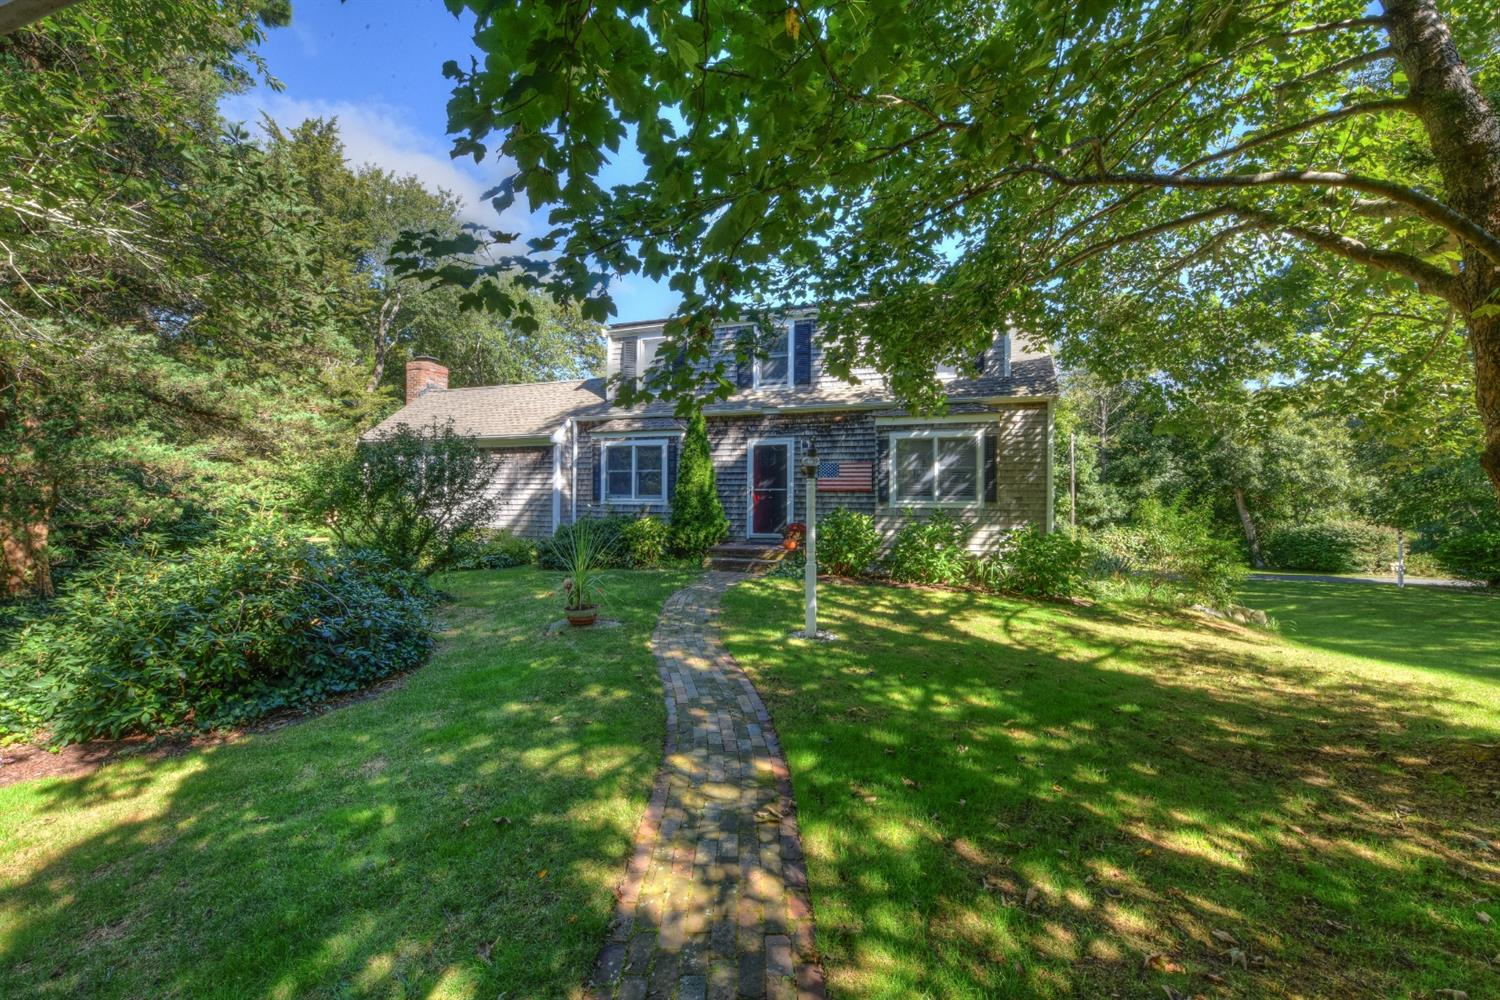 west barnstable Instantly search and view photos of all homes for sale in west barnstable, barnstable town, ma now west barnstable, barnstable town, ma real estate listings updated every 15 to 30 minutes.